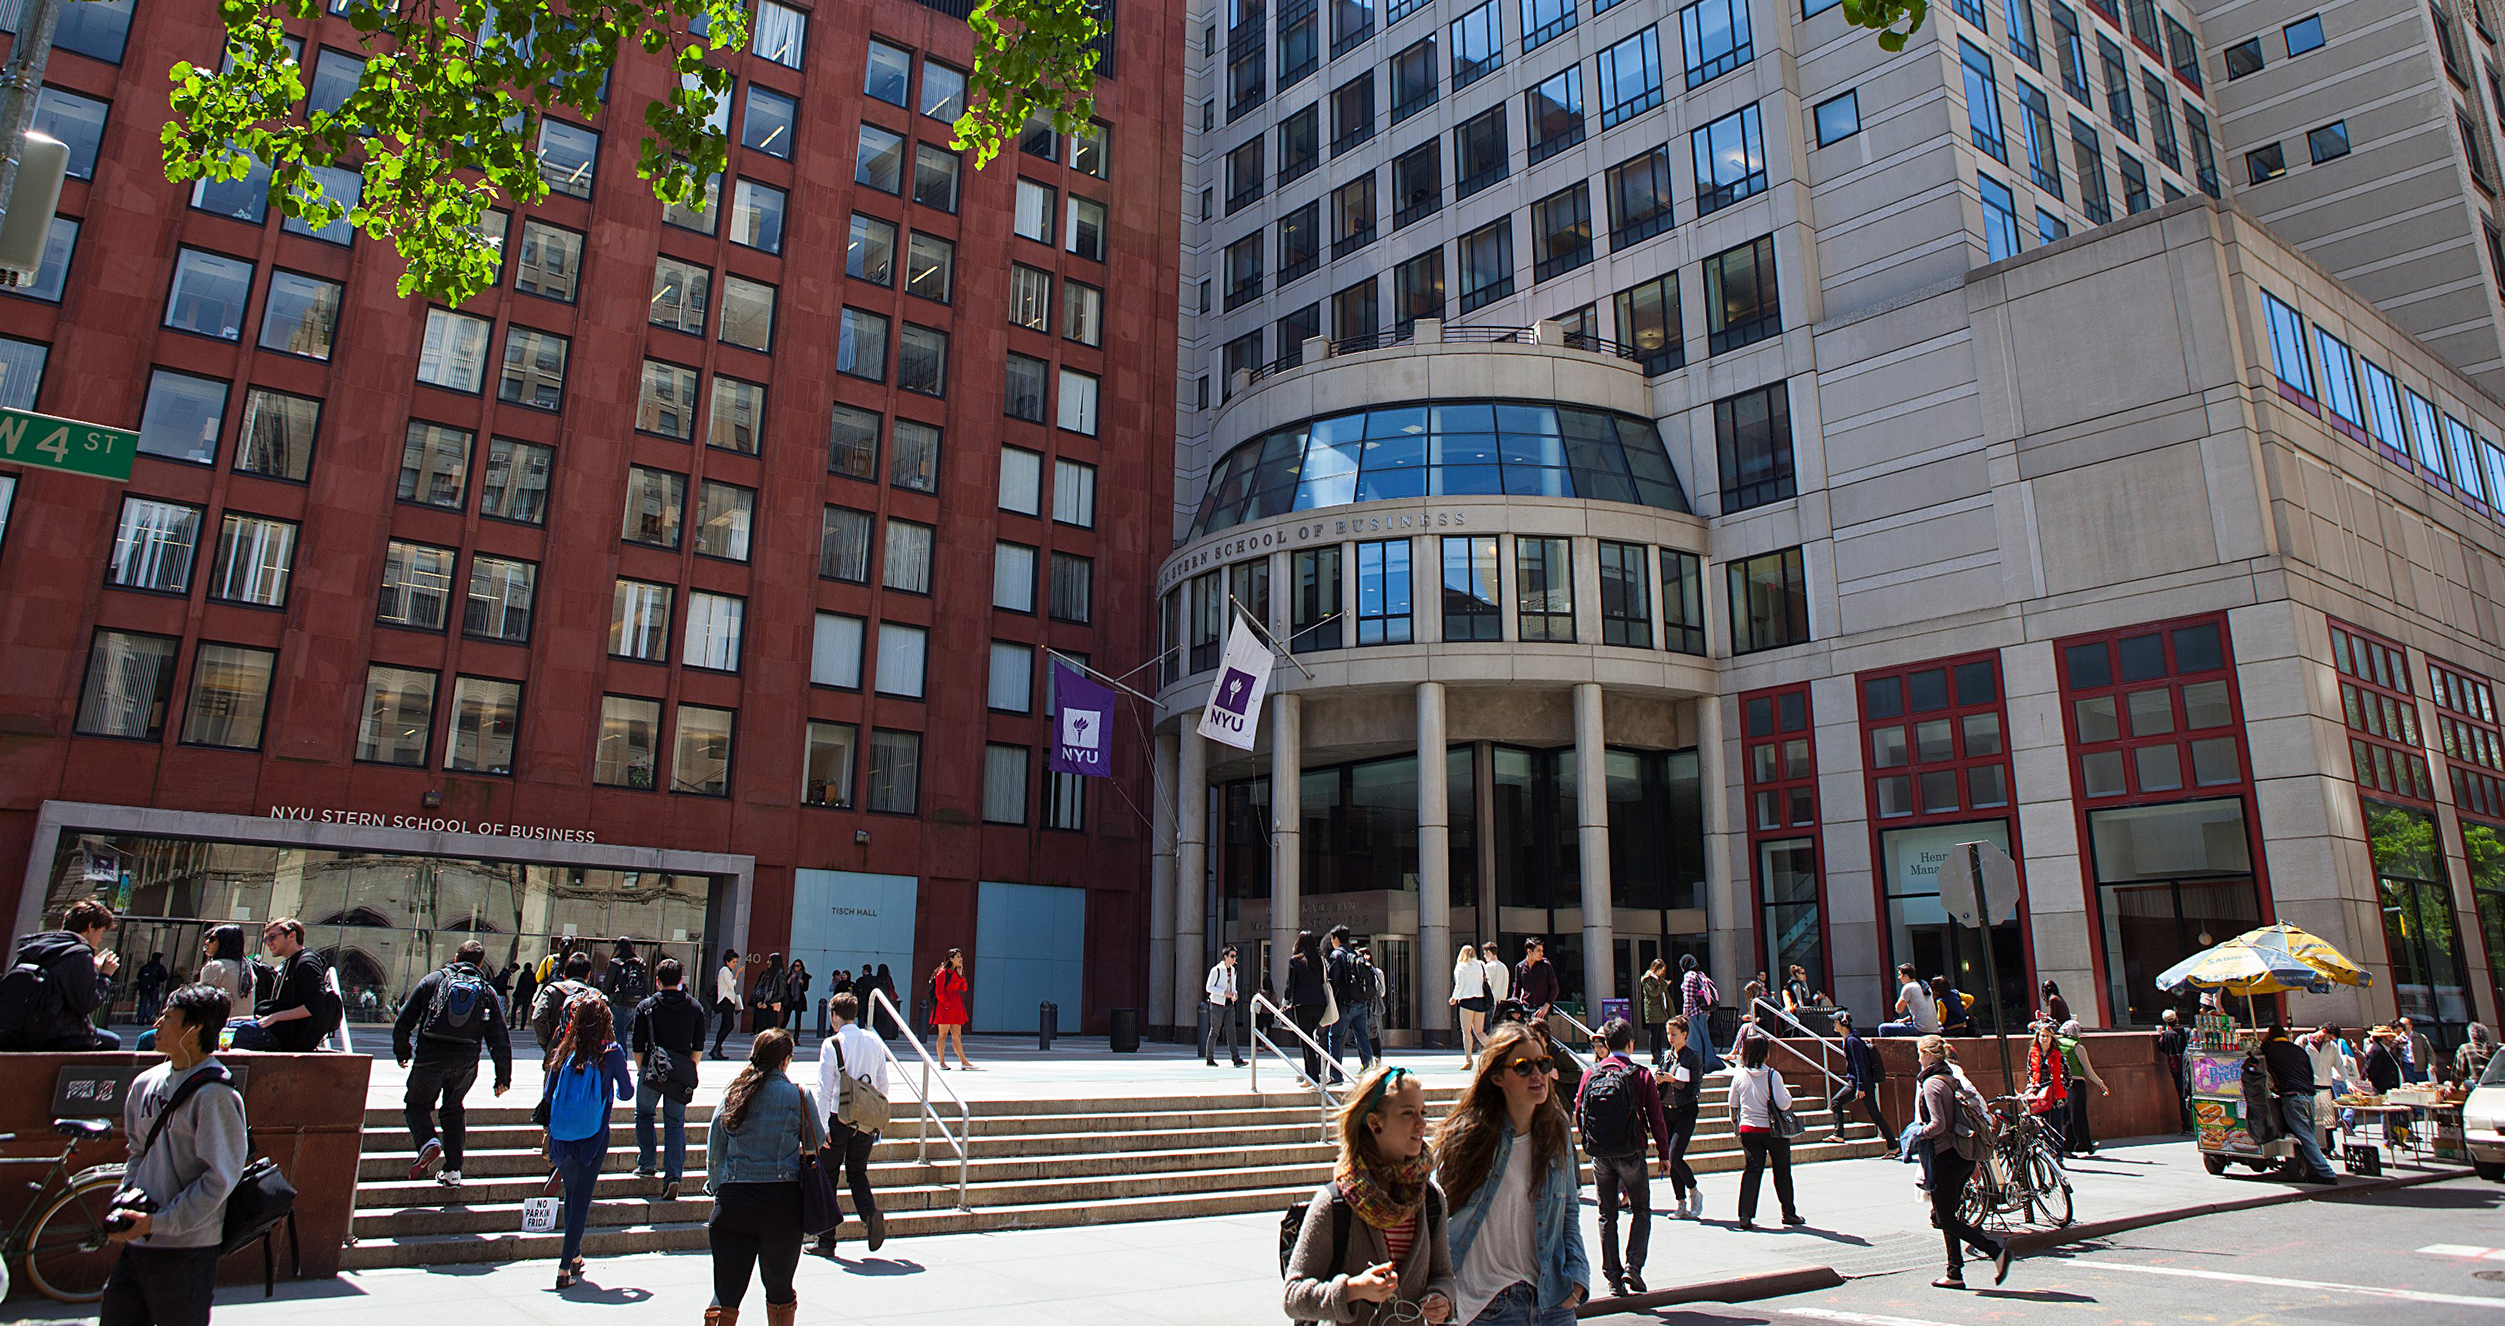 New York University MBA : Essential Details You Should Know About (2021 Update)